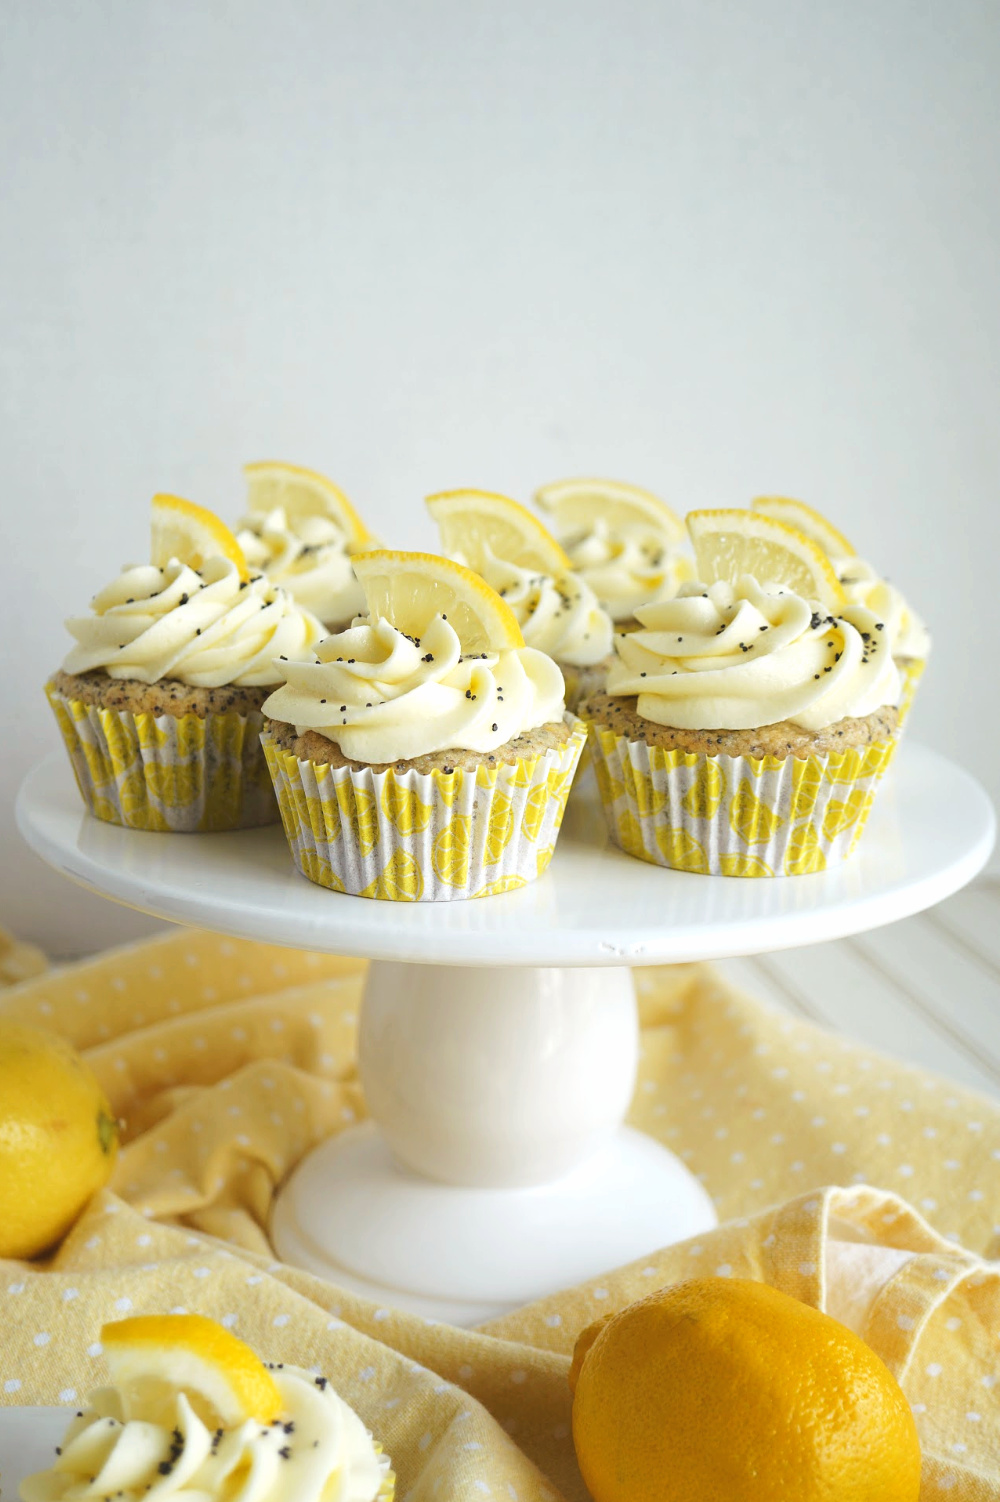 lemon poppyseed cupcakes on cake stand